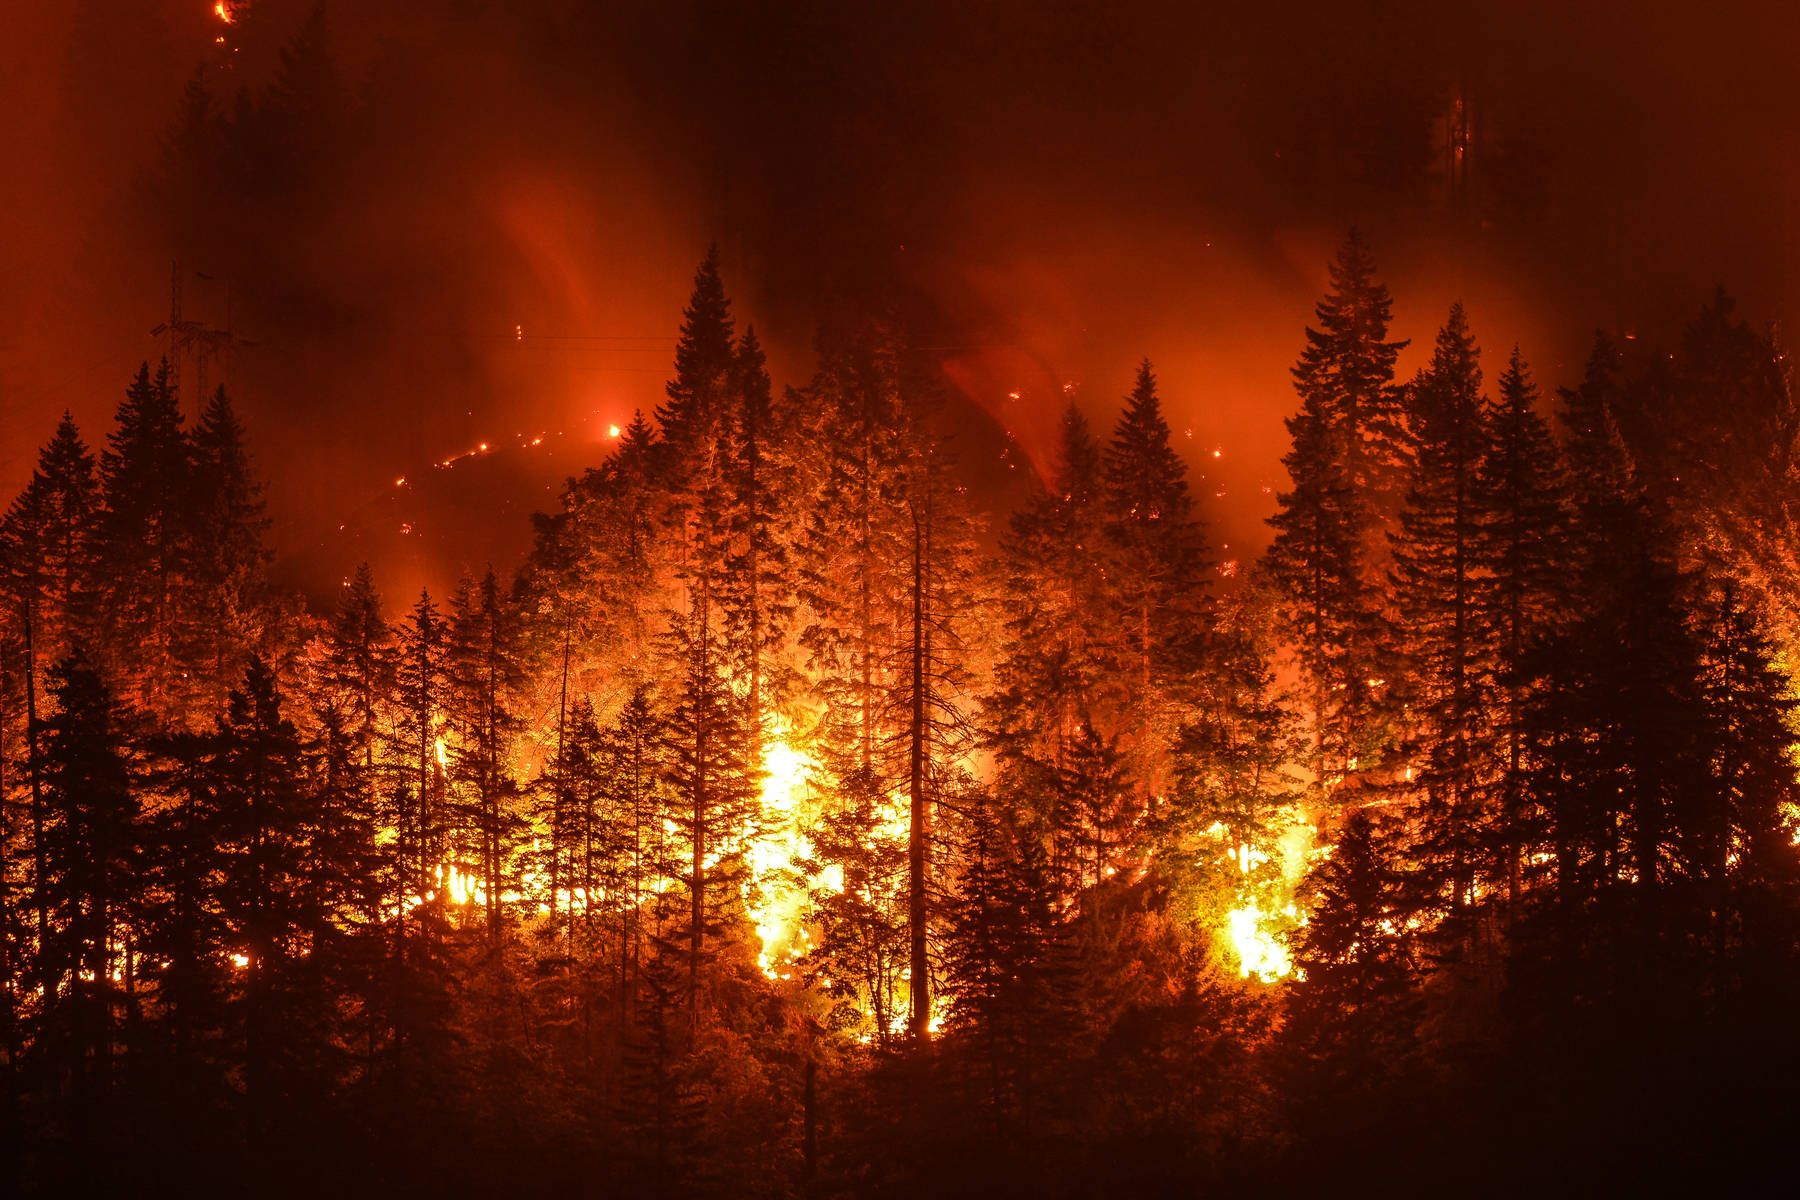 Pin By Jeremiah Nolte On Nature California Wildfires Forest Fire Natural Disasters